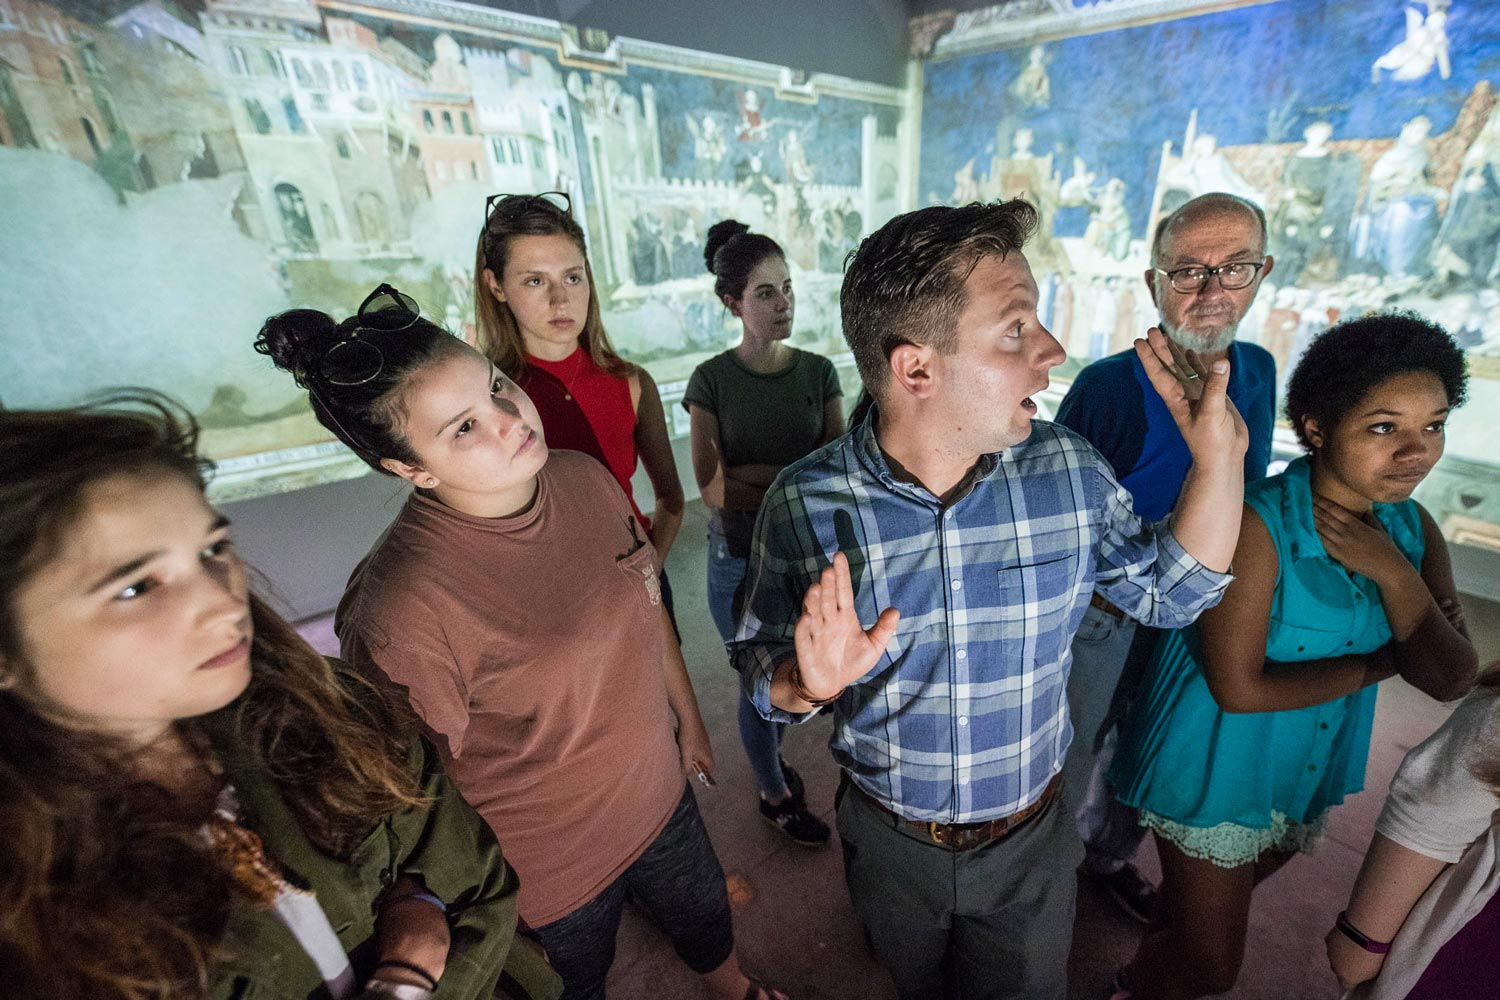 During one class period, Hupe transformed a classroom into a recreated fresco, stitching together images and projecting them on the walls.